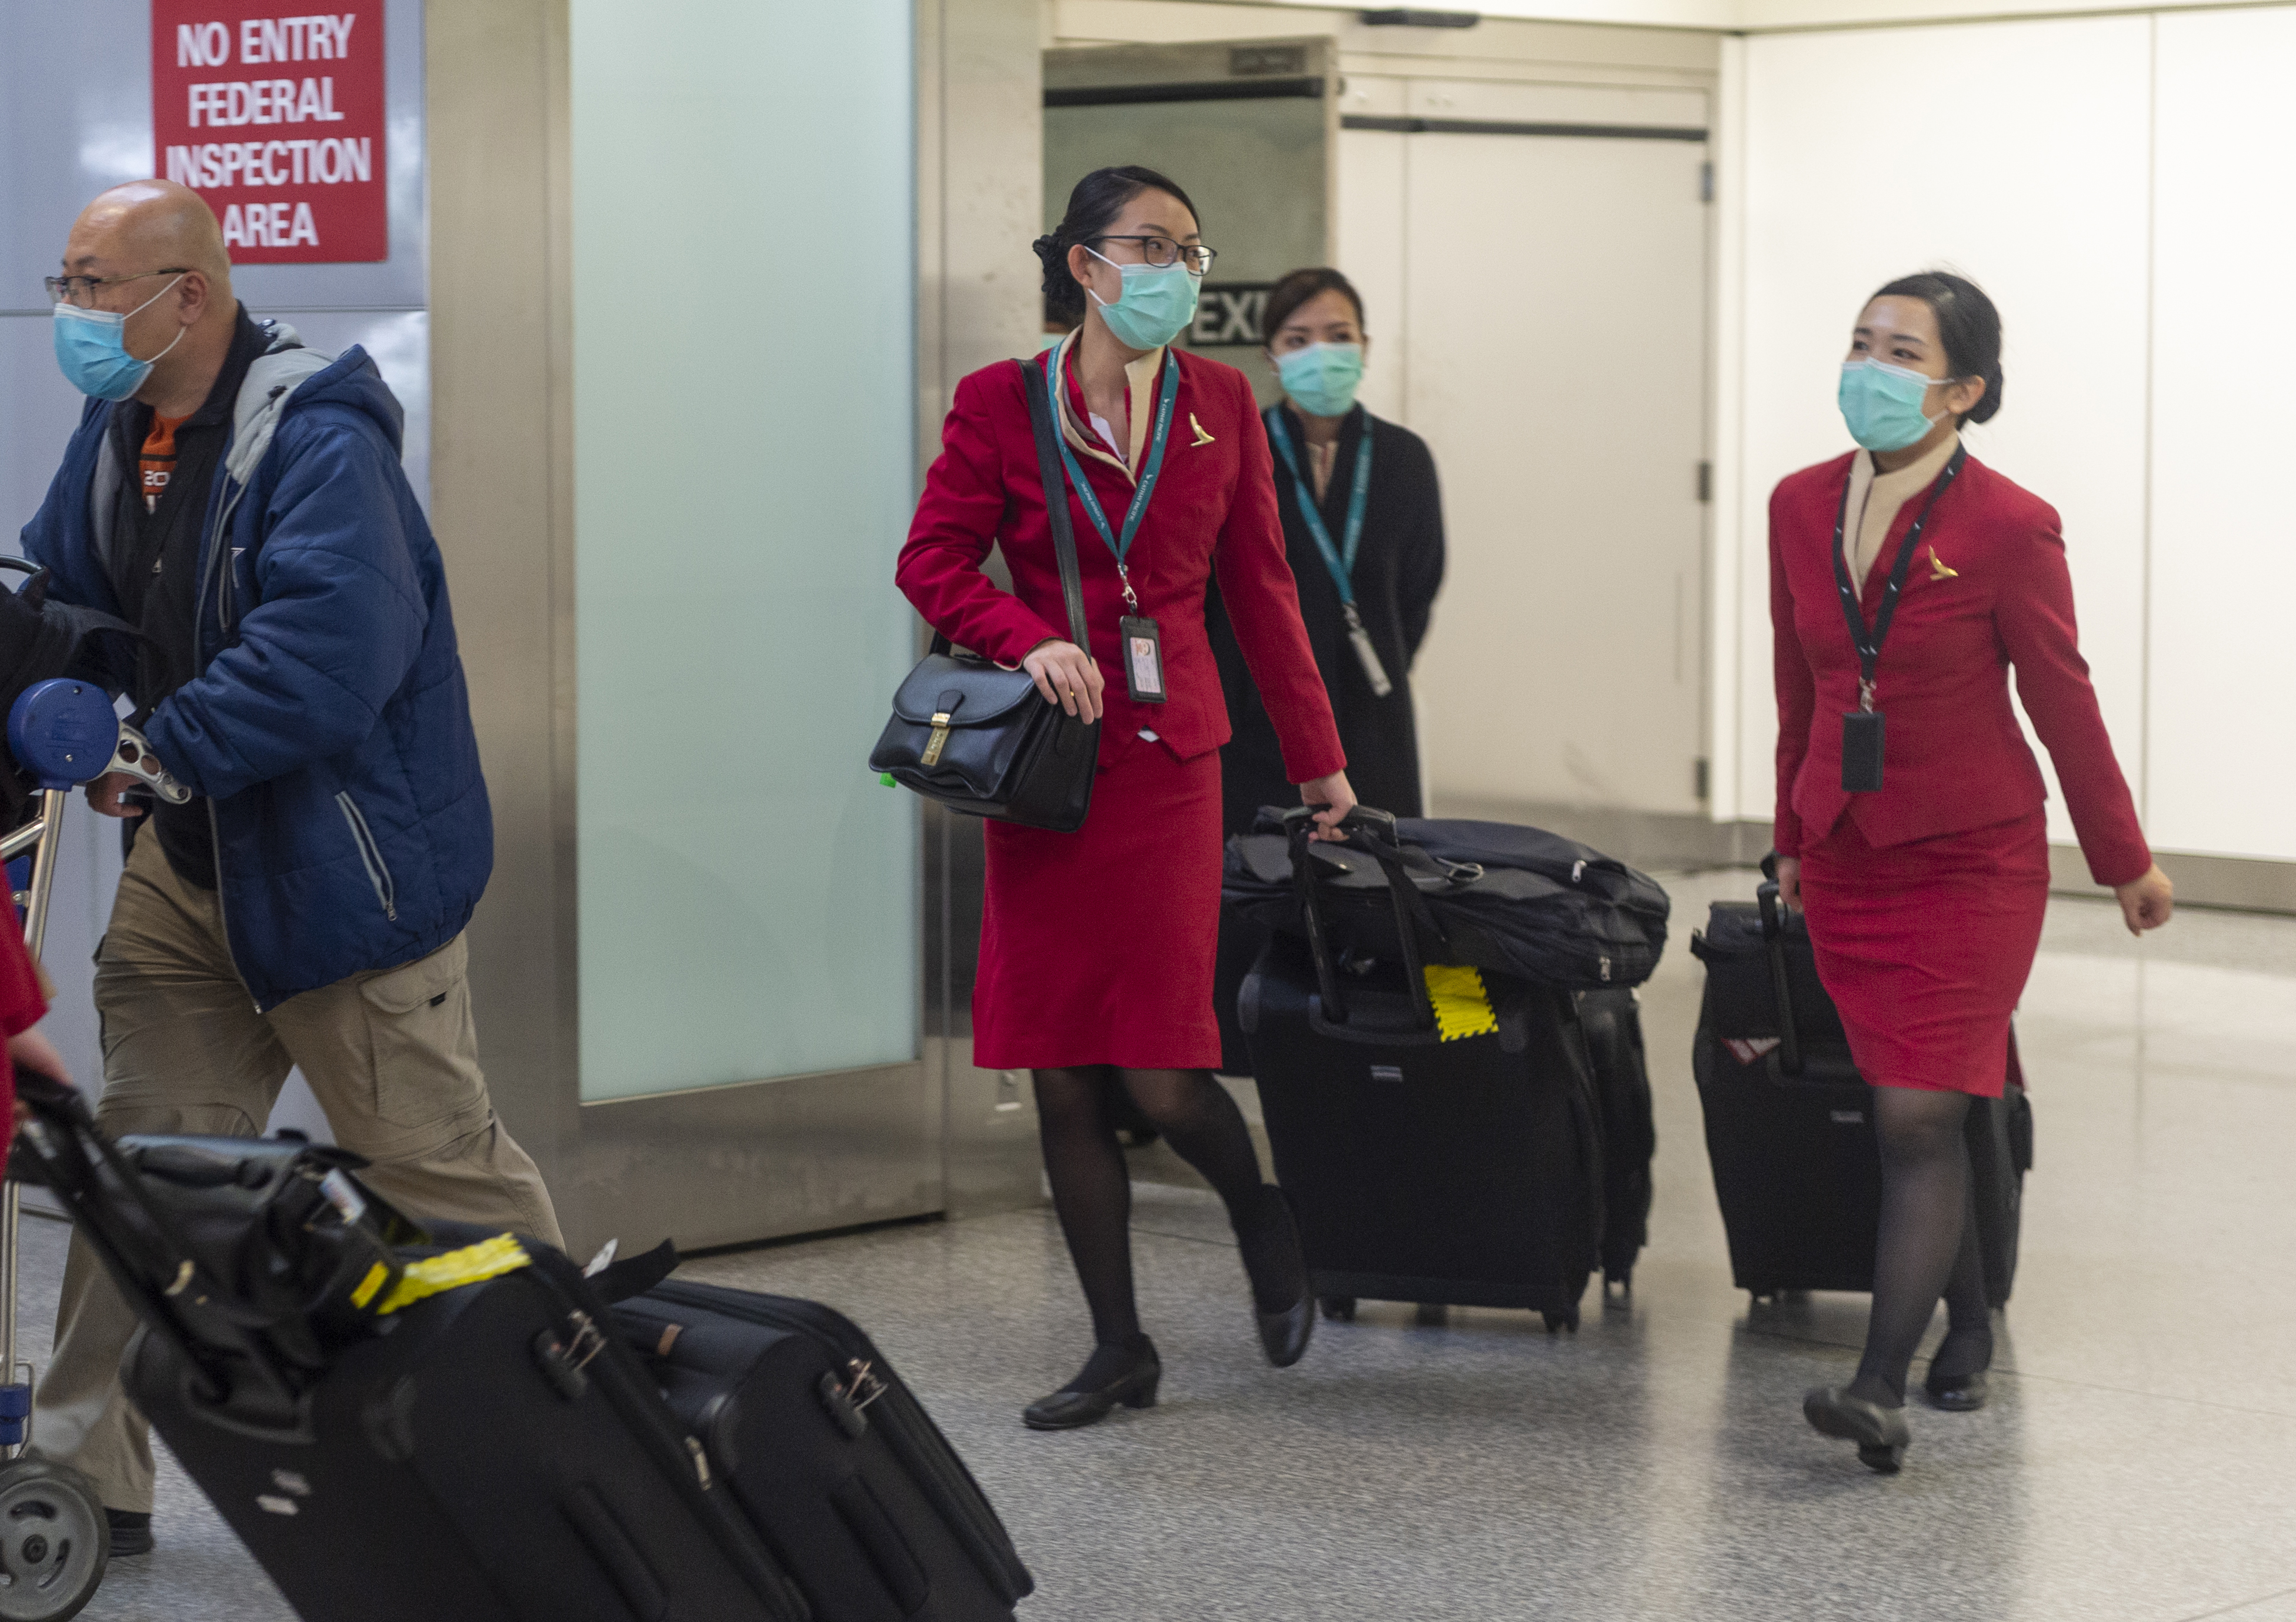 Cathay Pacific Airways cabin crew wearing face masks walk out of the international terminal at the San Francisco International Airport in Millbrae, California, United States on January 28, 2020. There are now 8,235 confirmed cases of coronavirus, with 171 death and 143 recovered. (Photo by Yichuan Cao/NurPhoto via Getty Images)